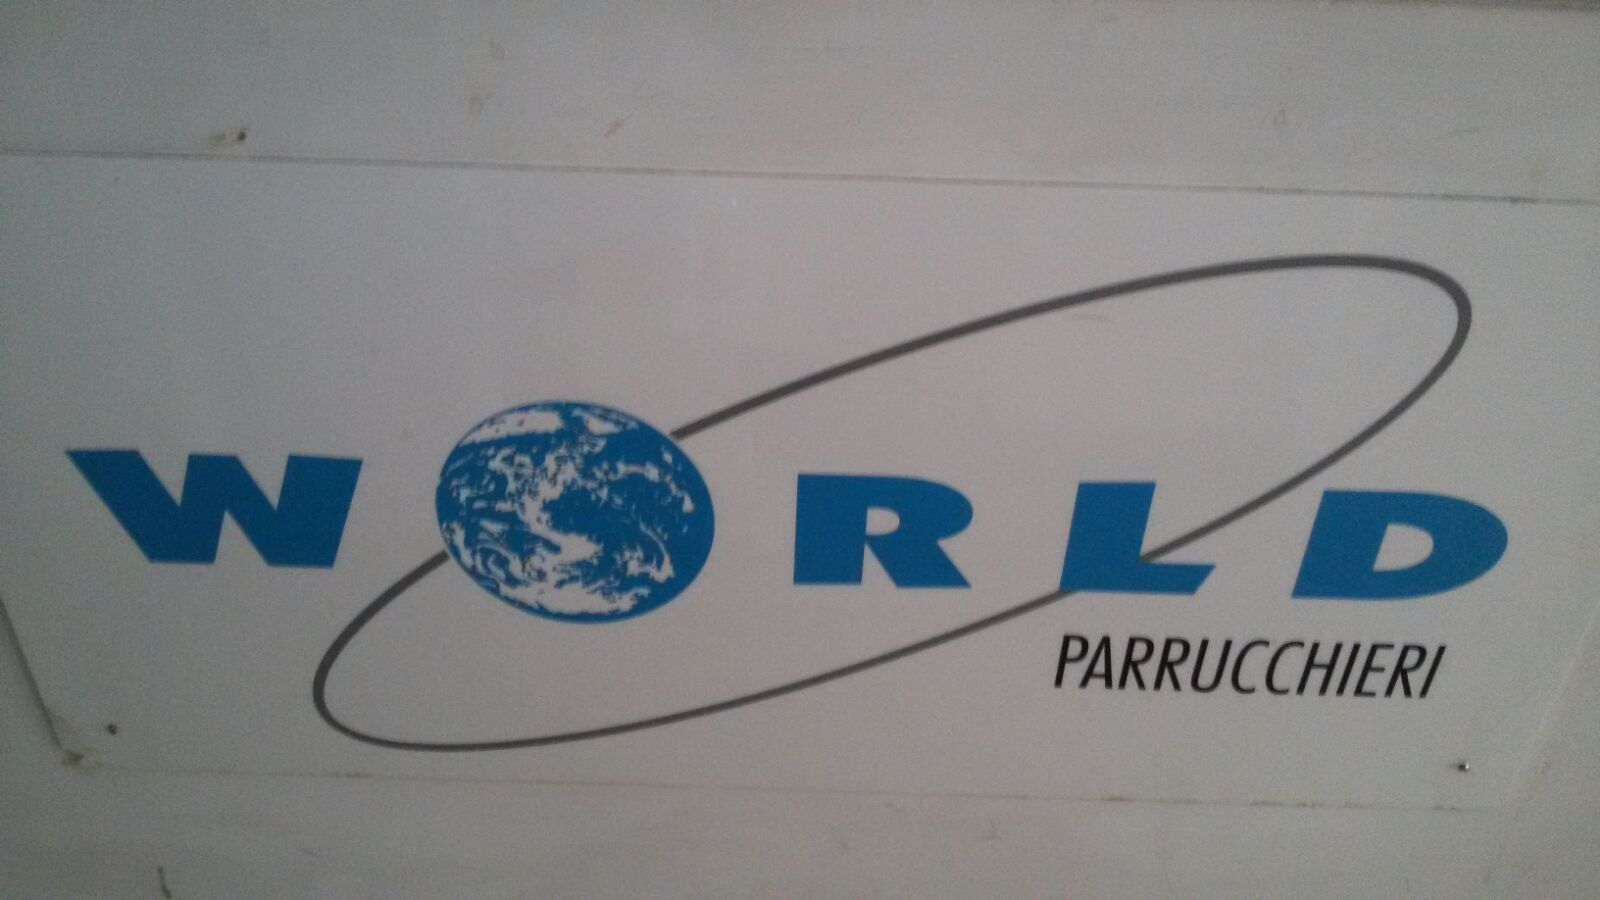 CESI  World parrucchieri